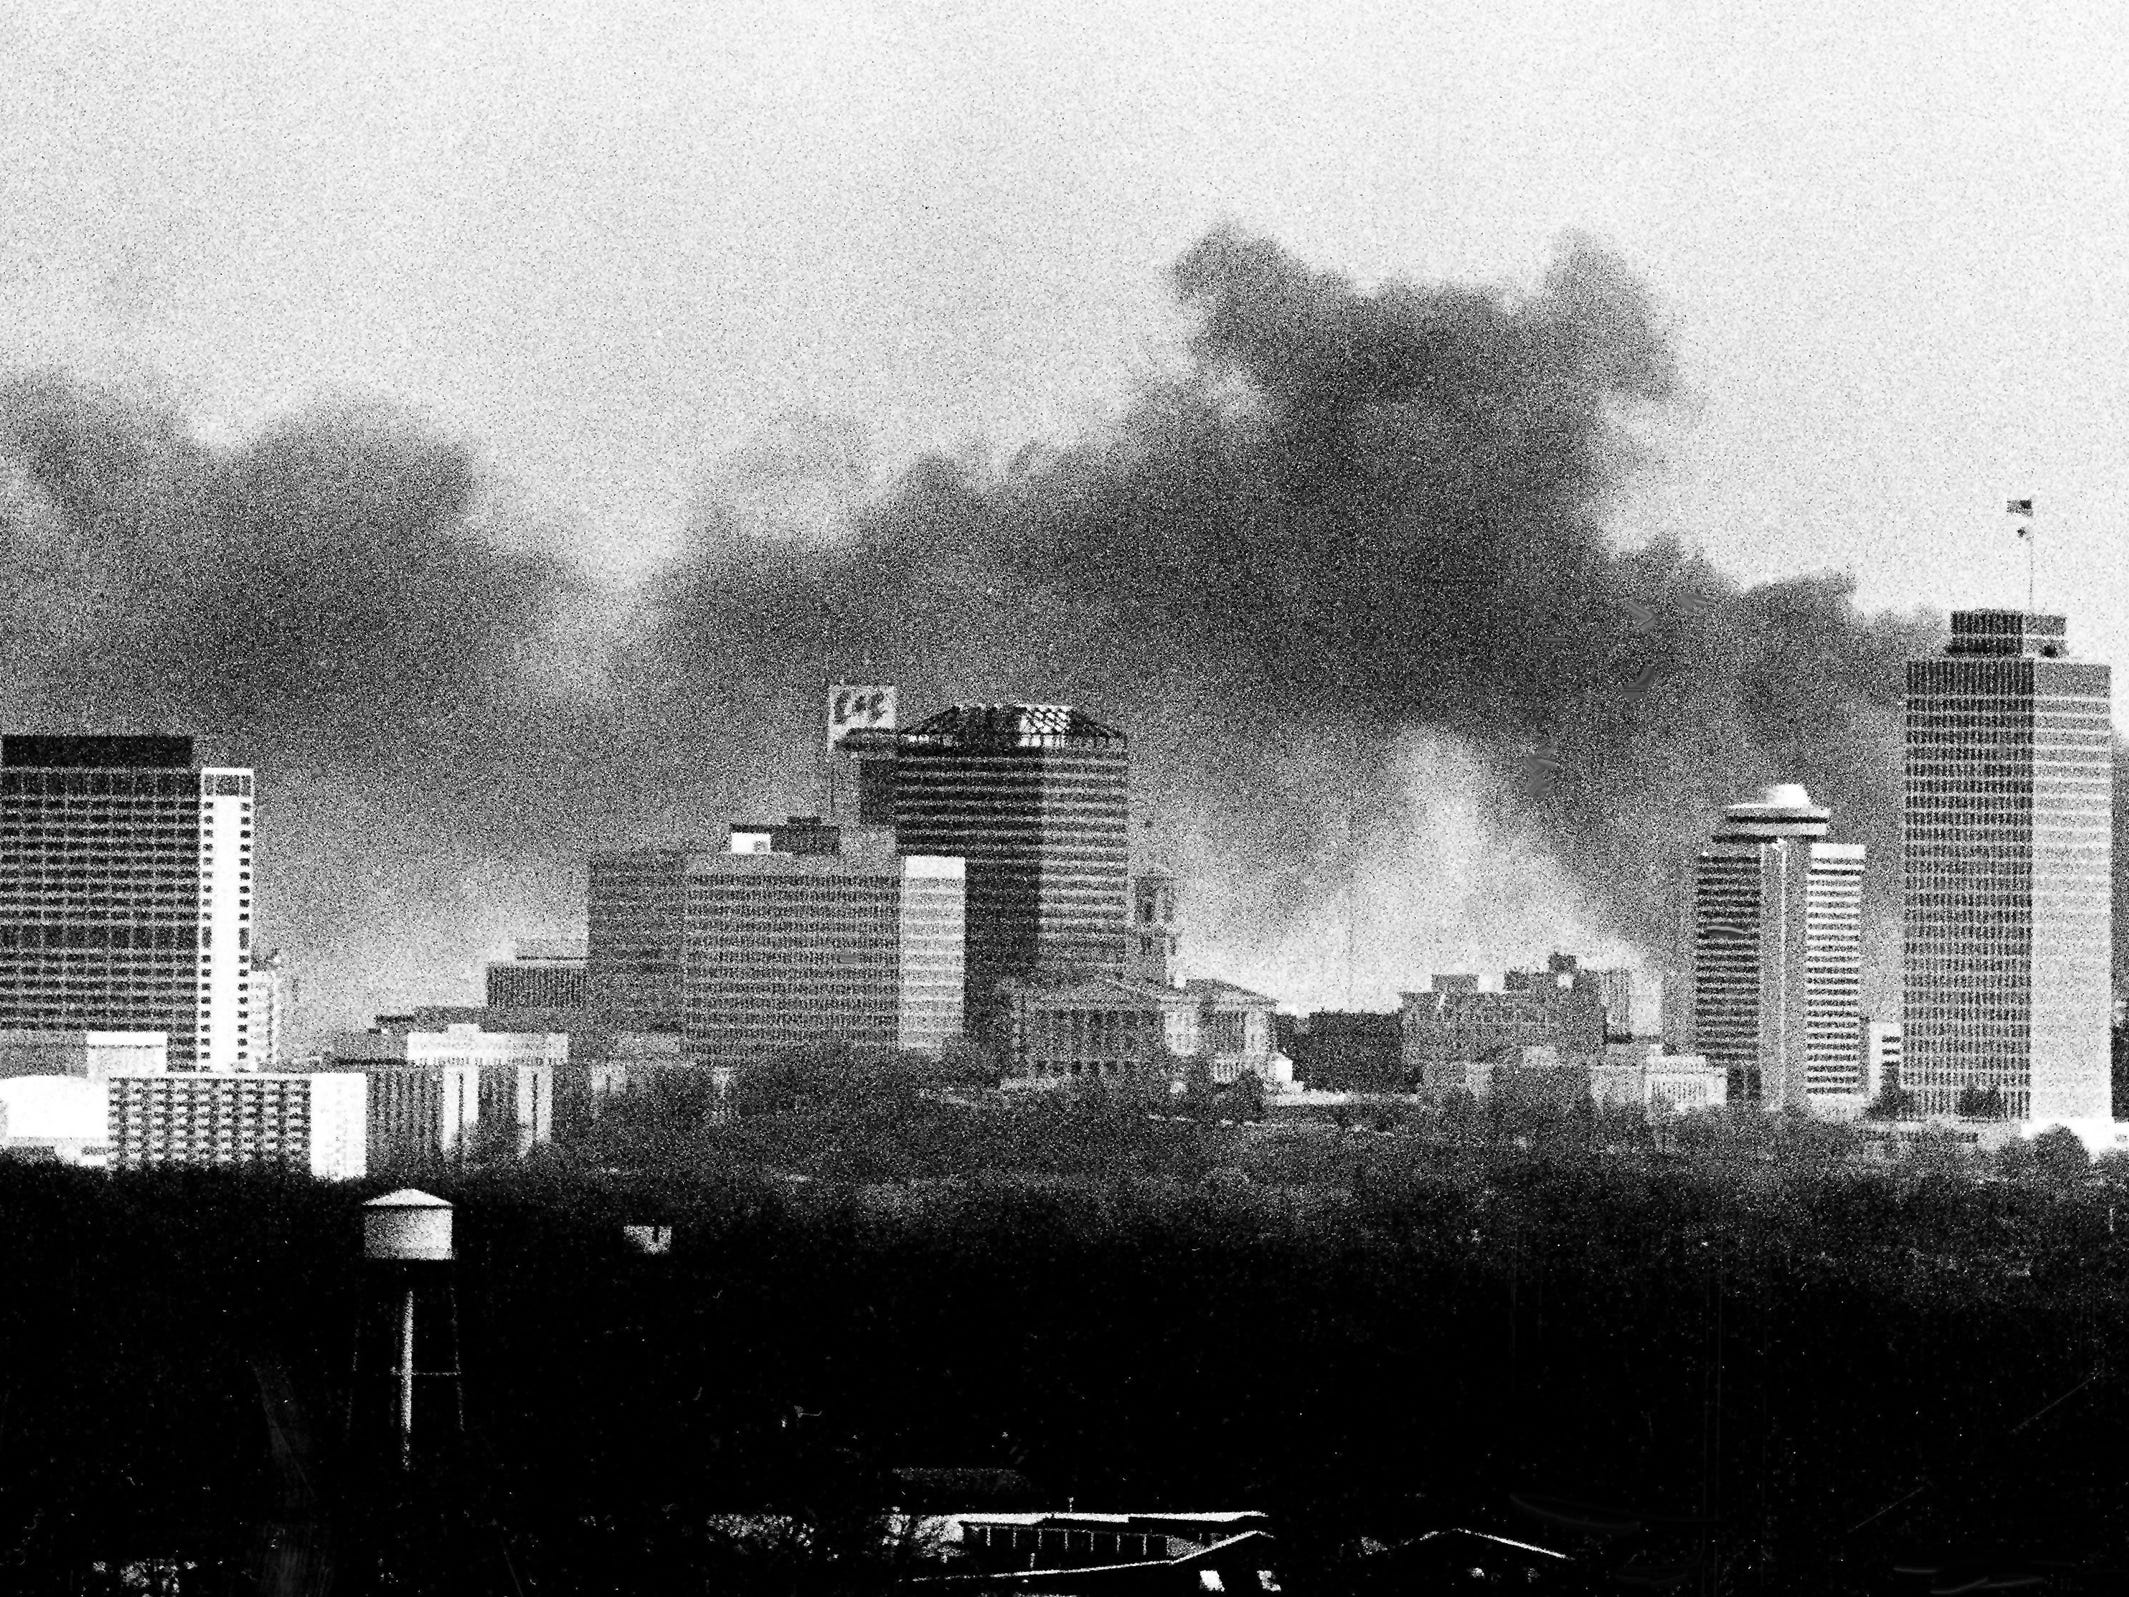 Clouds of thick black smoke darken the Nashville skyline March 30, 1982 as a fire at Southern Oil Services consumes thousands of gallons of oil and oil products stored at the Hart Street terminal in South Nashville.